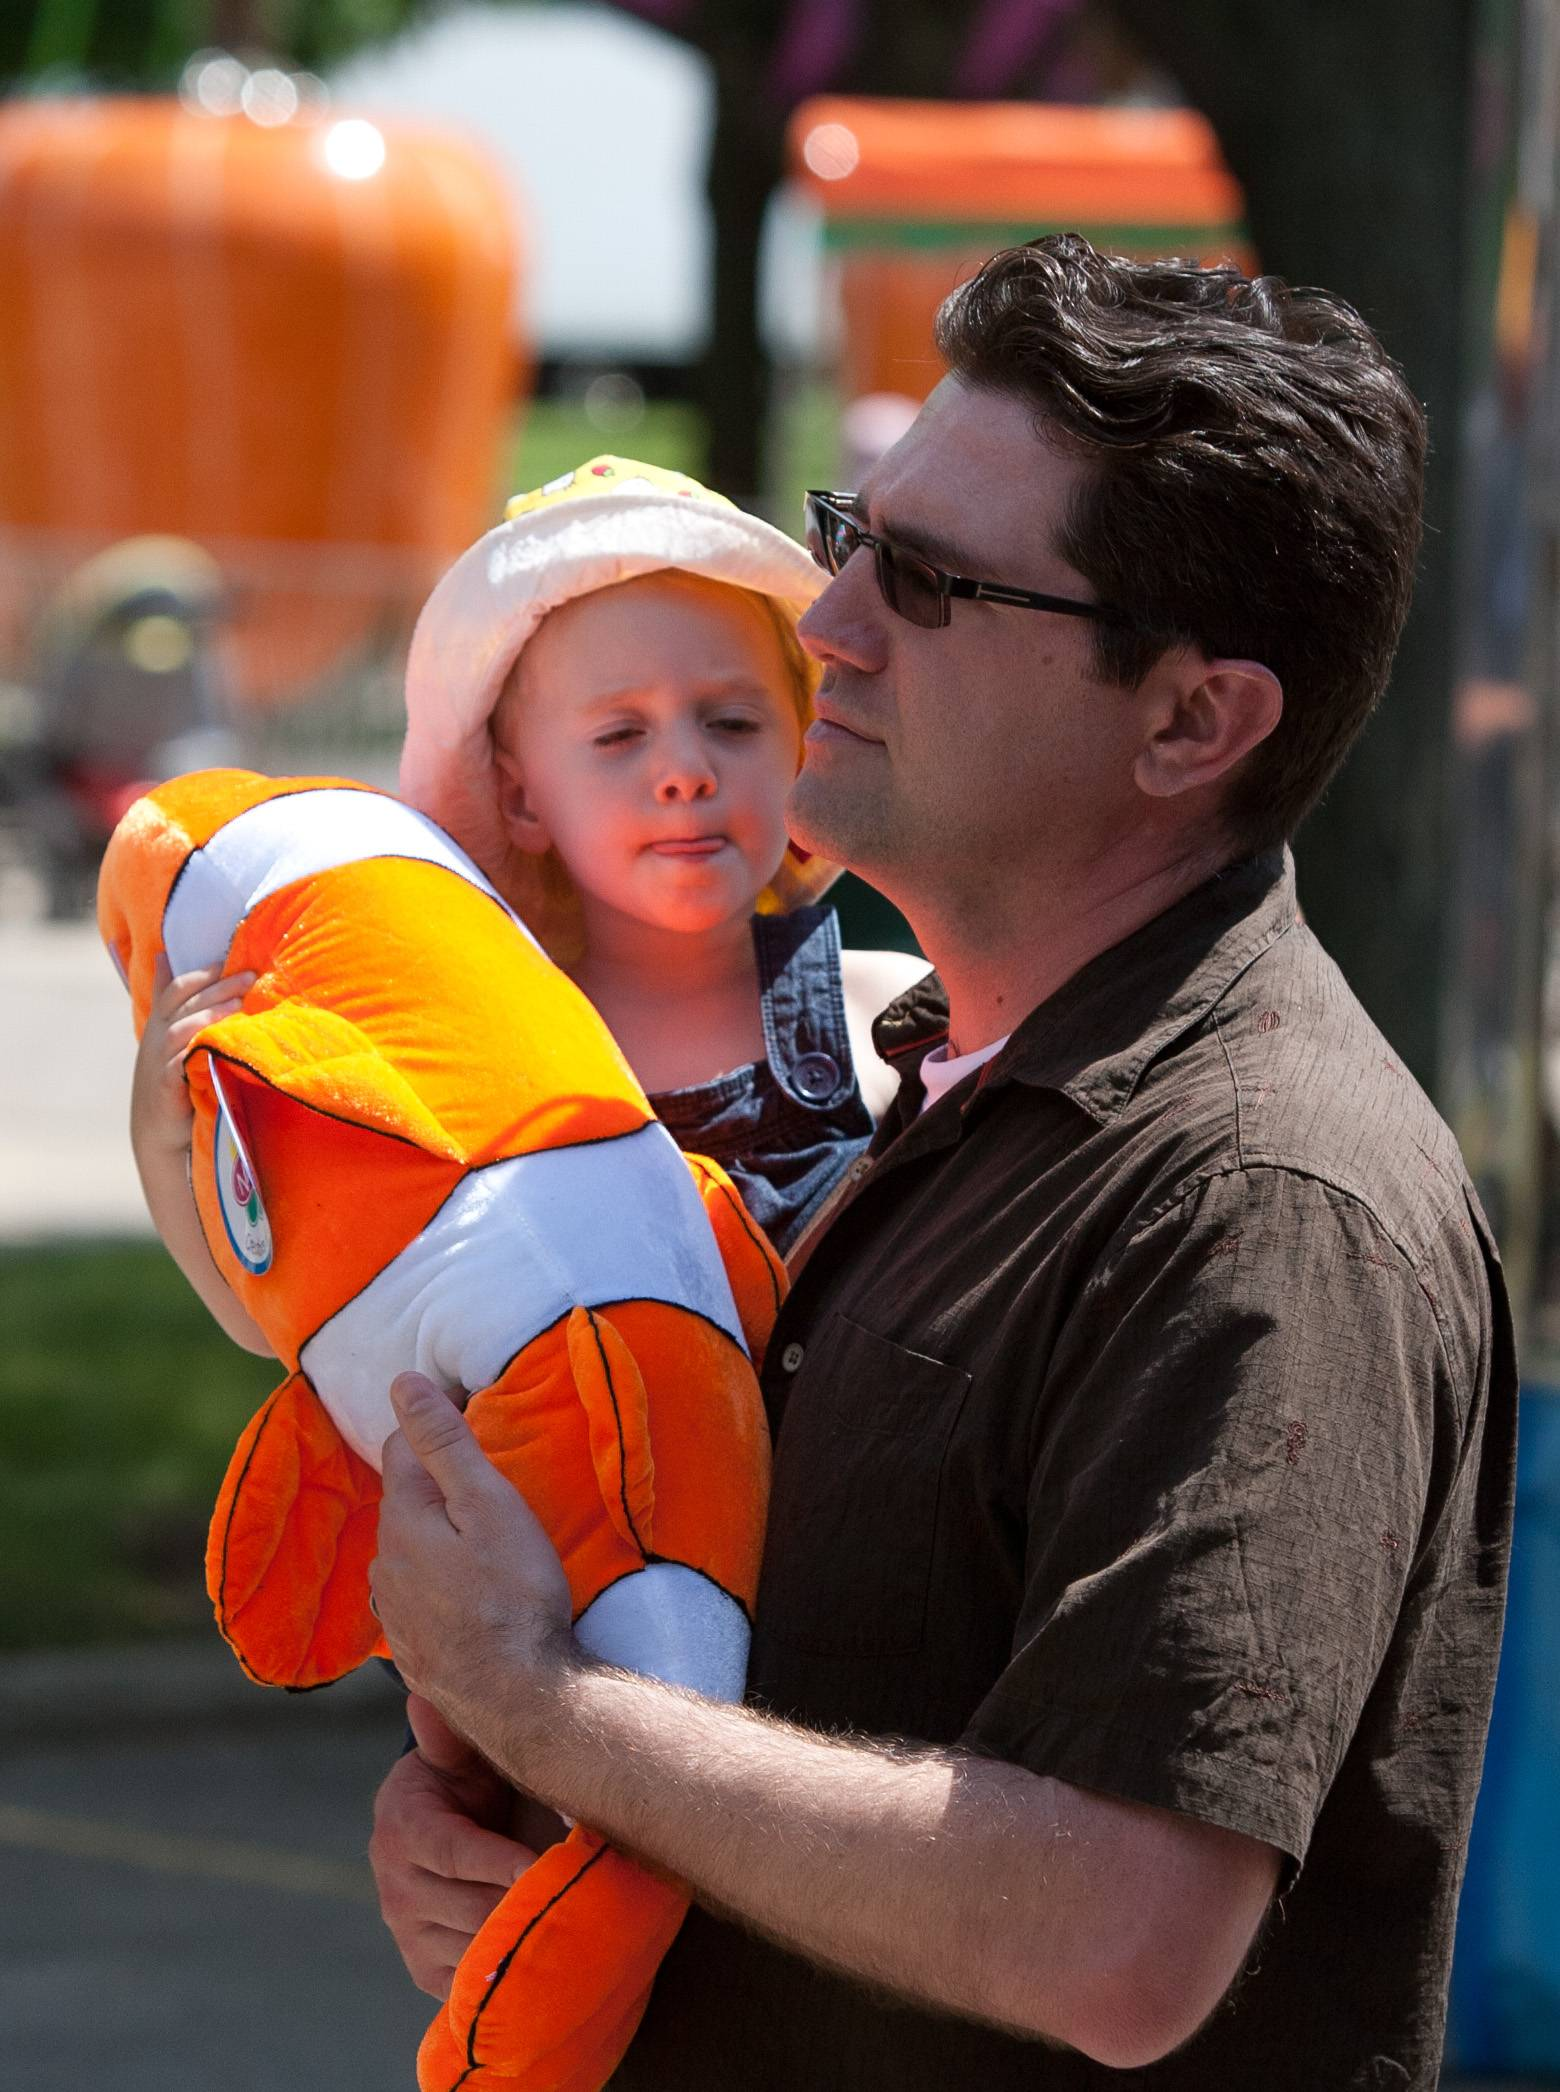 Doug Pelletier of Chicago holds his daughter Maeve Pelletier, 2, after winning a stuffed animal in a fire hose game during Eyes to the Sky in Lisle.